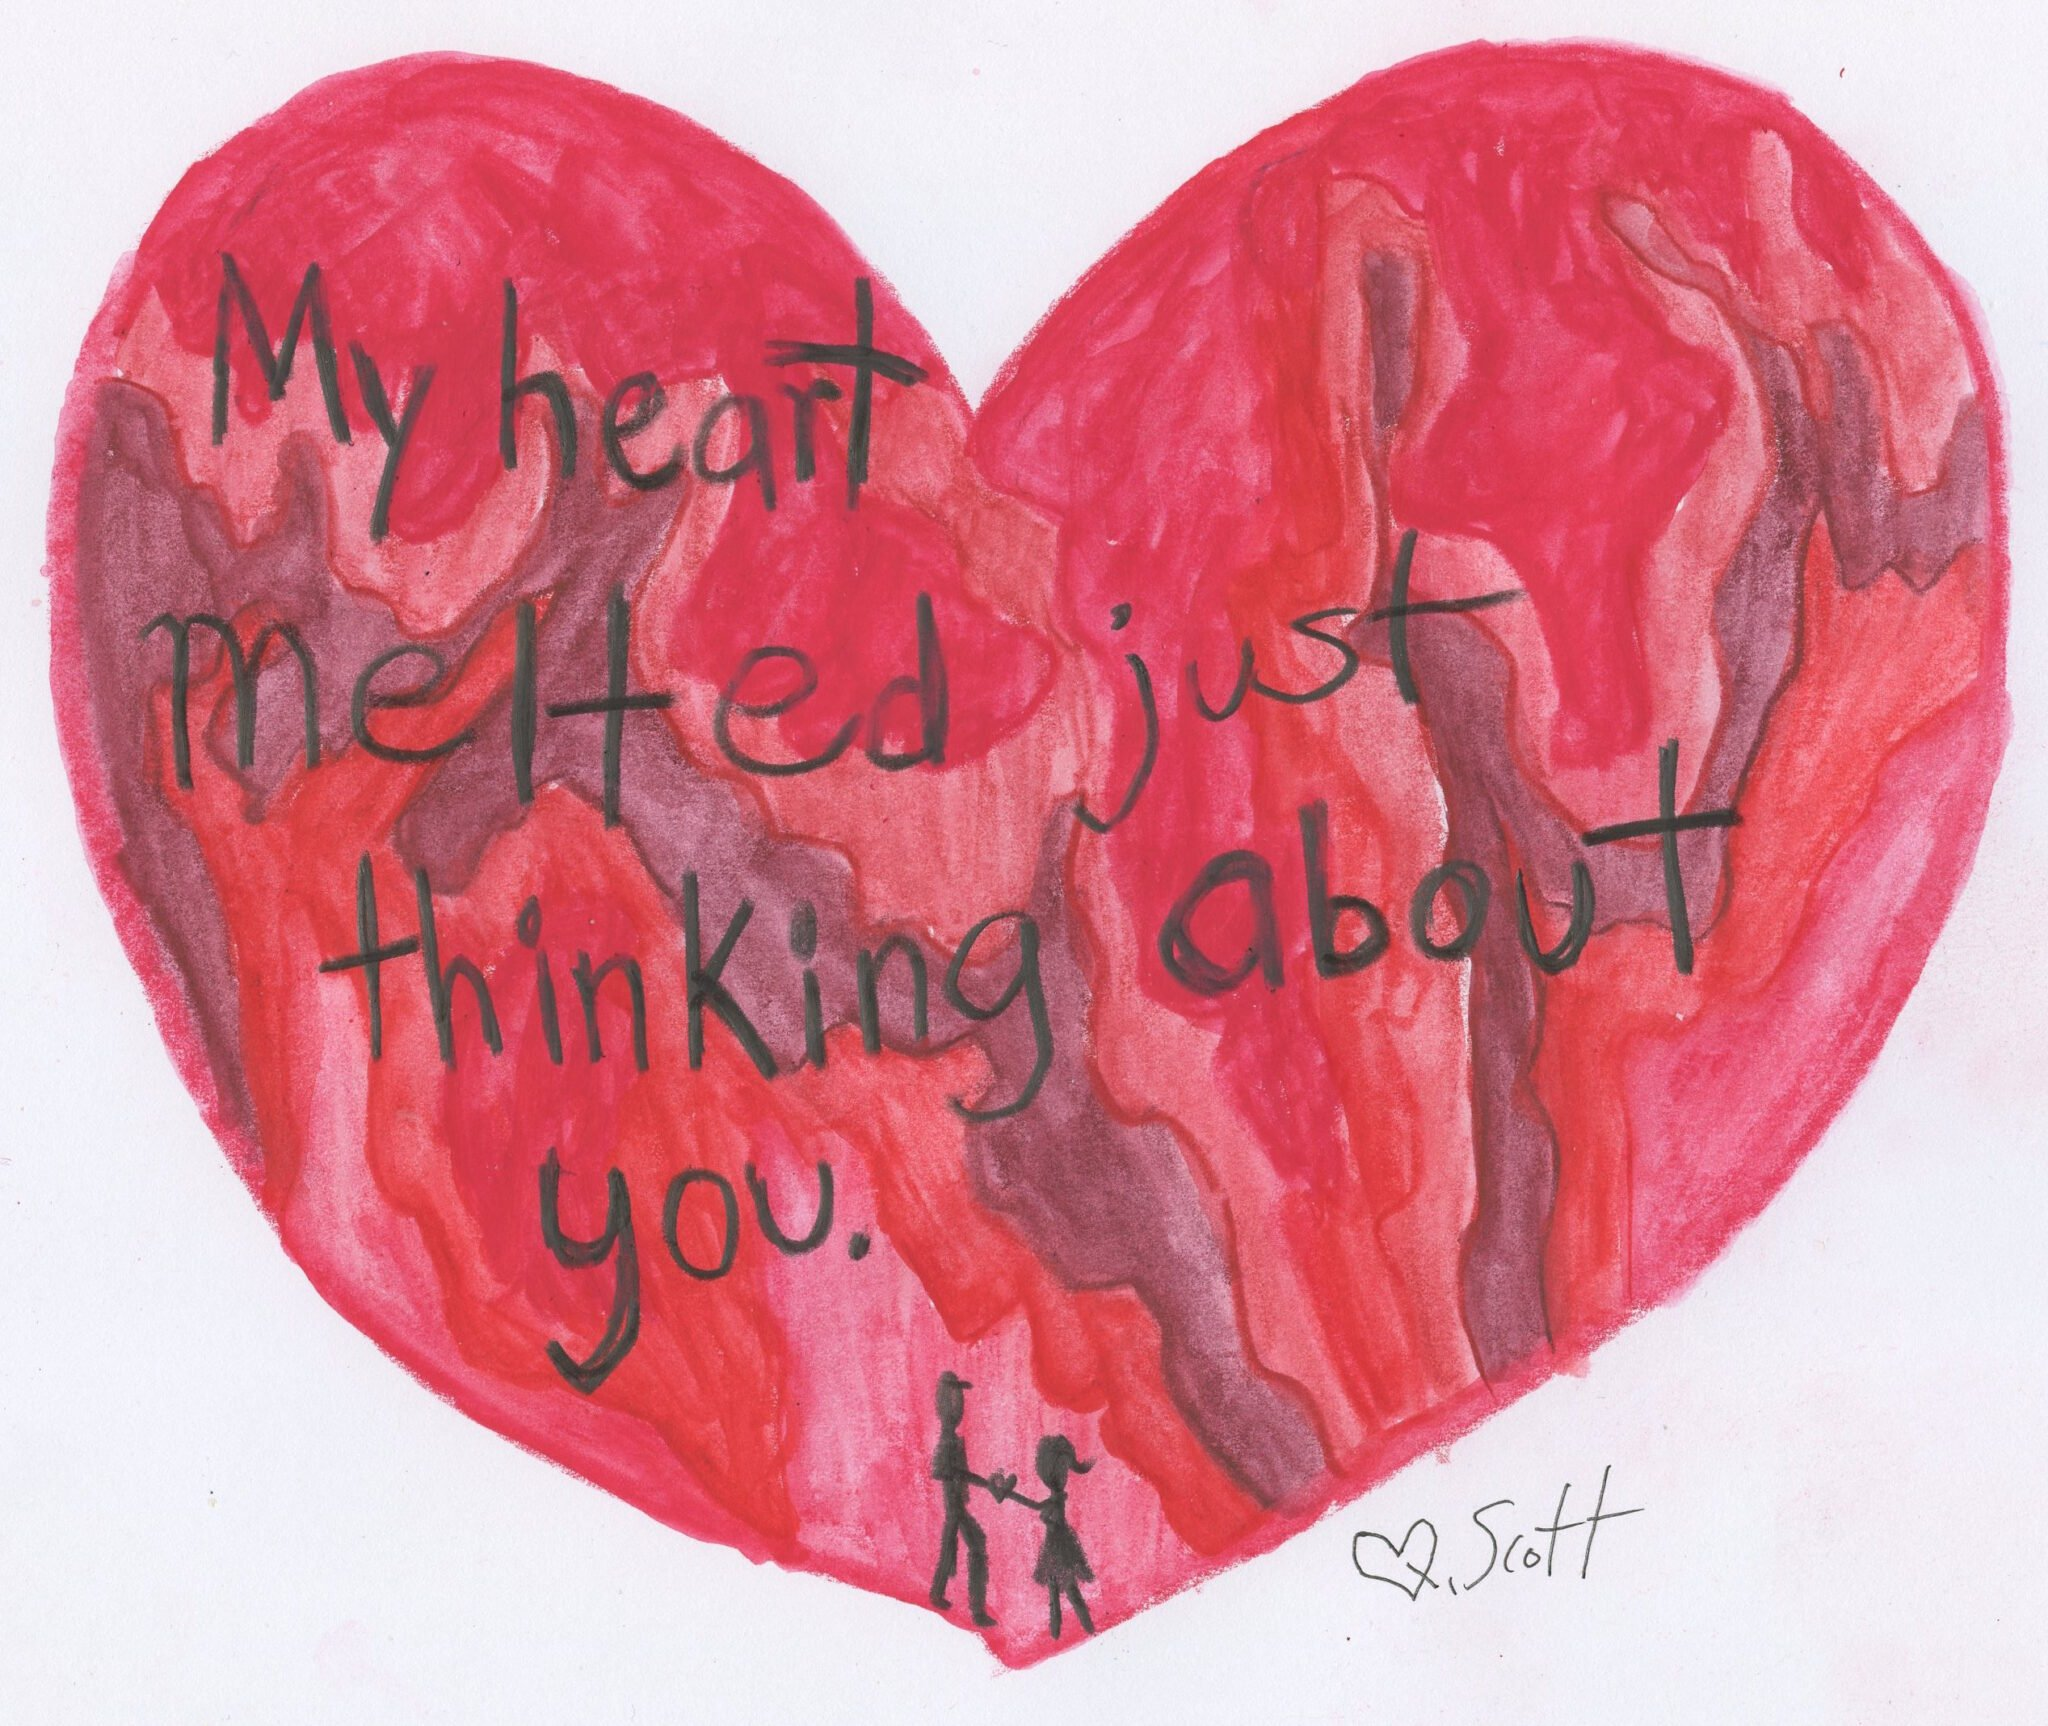 My heart melted just thinking about you.